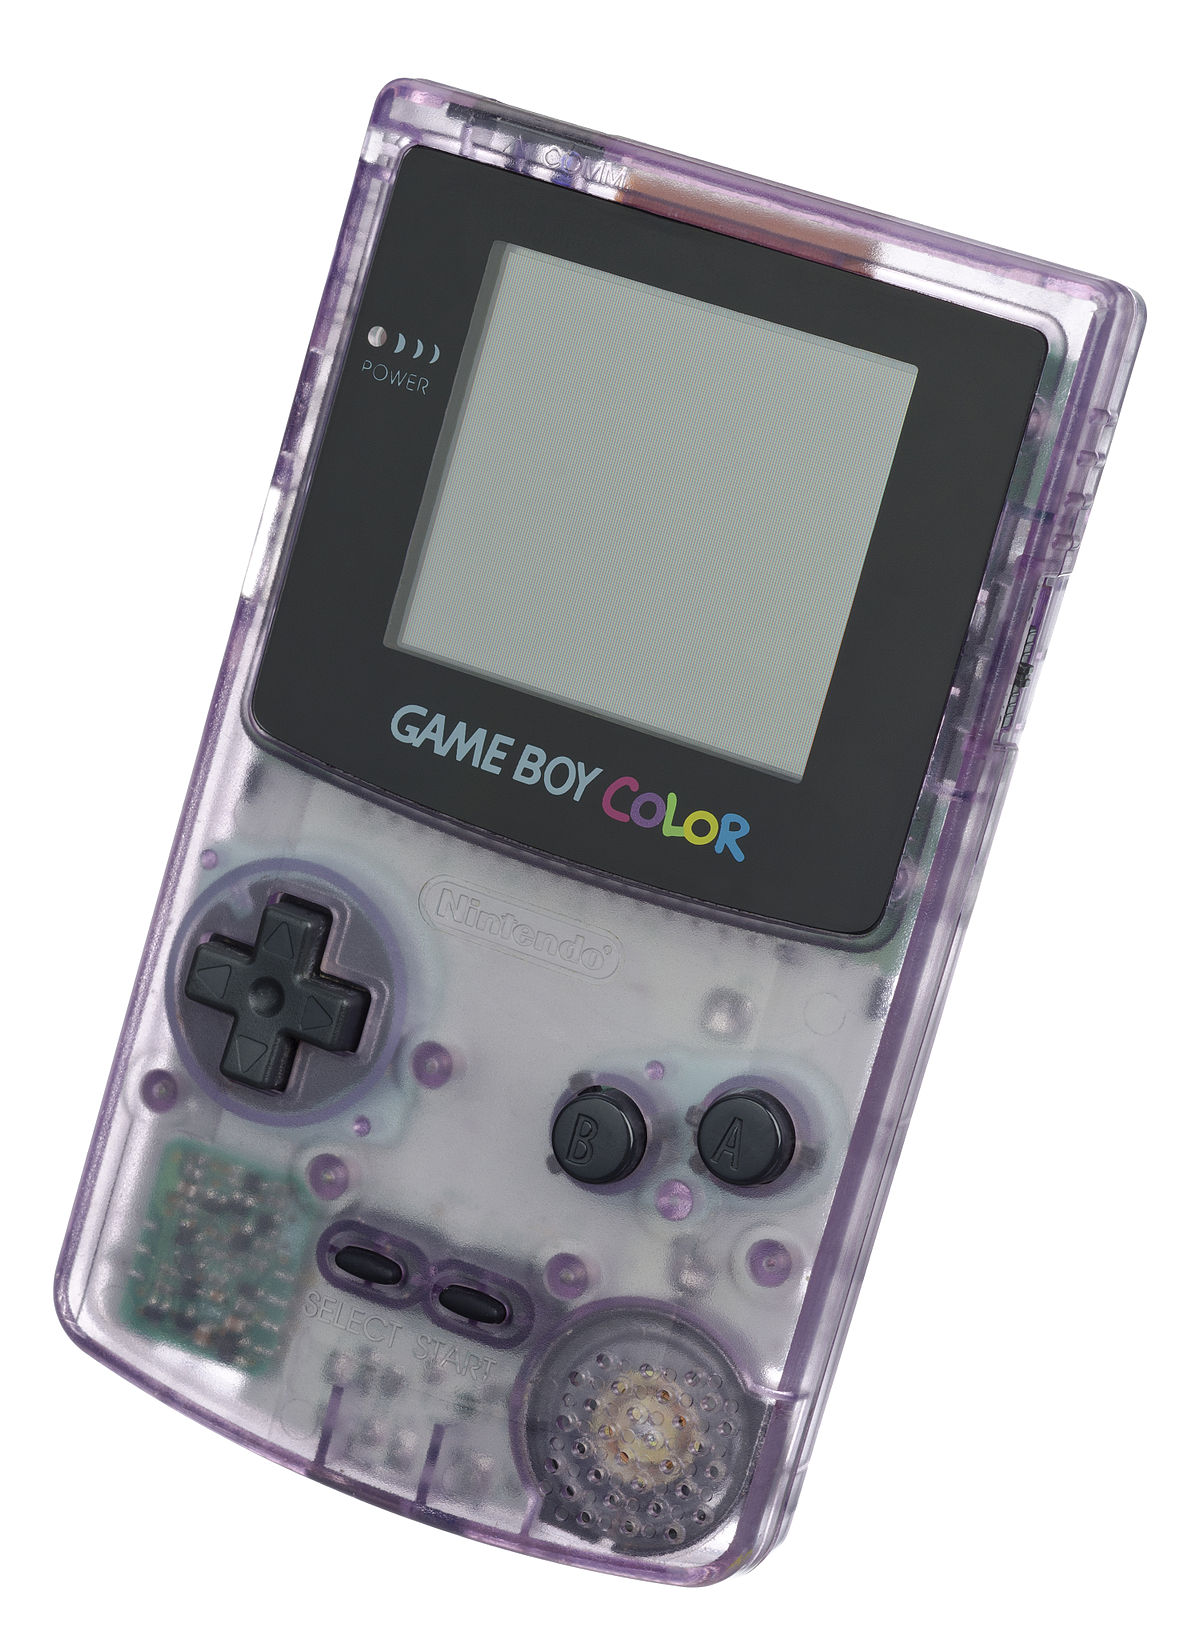 Gameboy color palettes - Gameboy Color Palettes 24